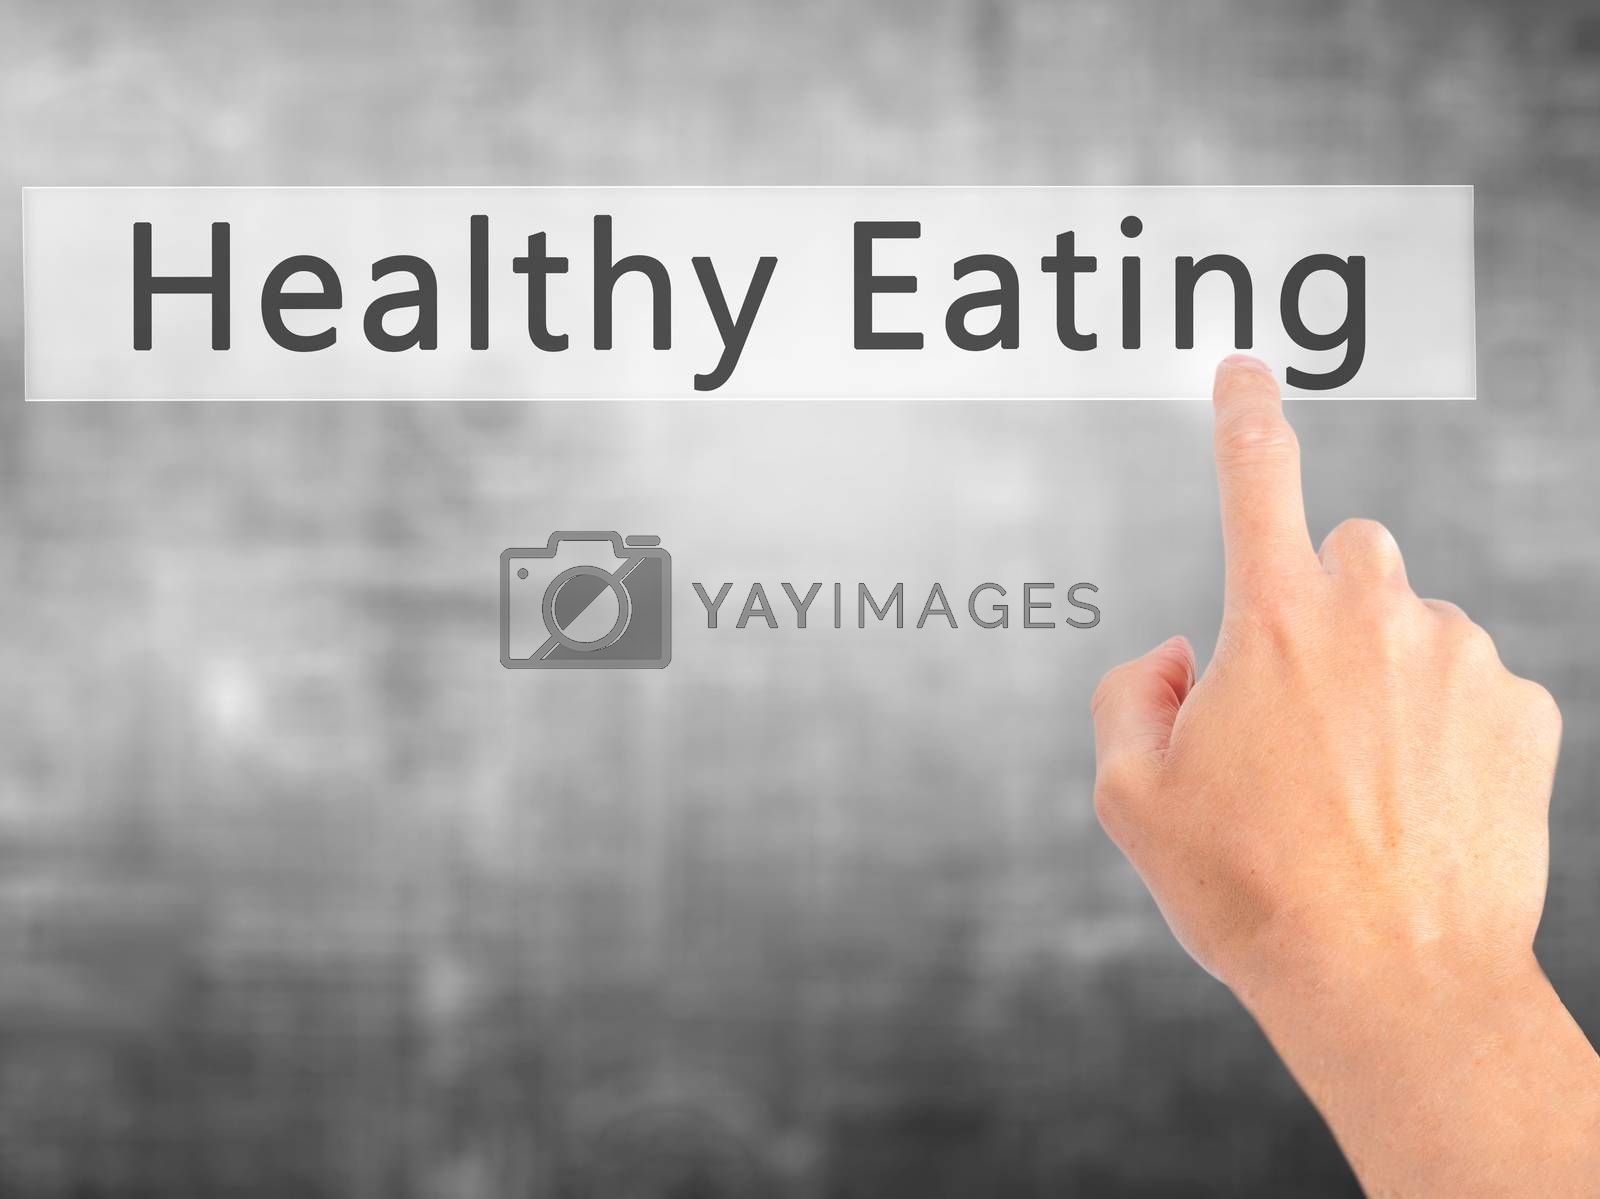 Healthy Eating - Hand pressing a button on blurred background co by netsay.net